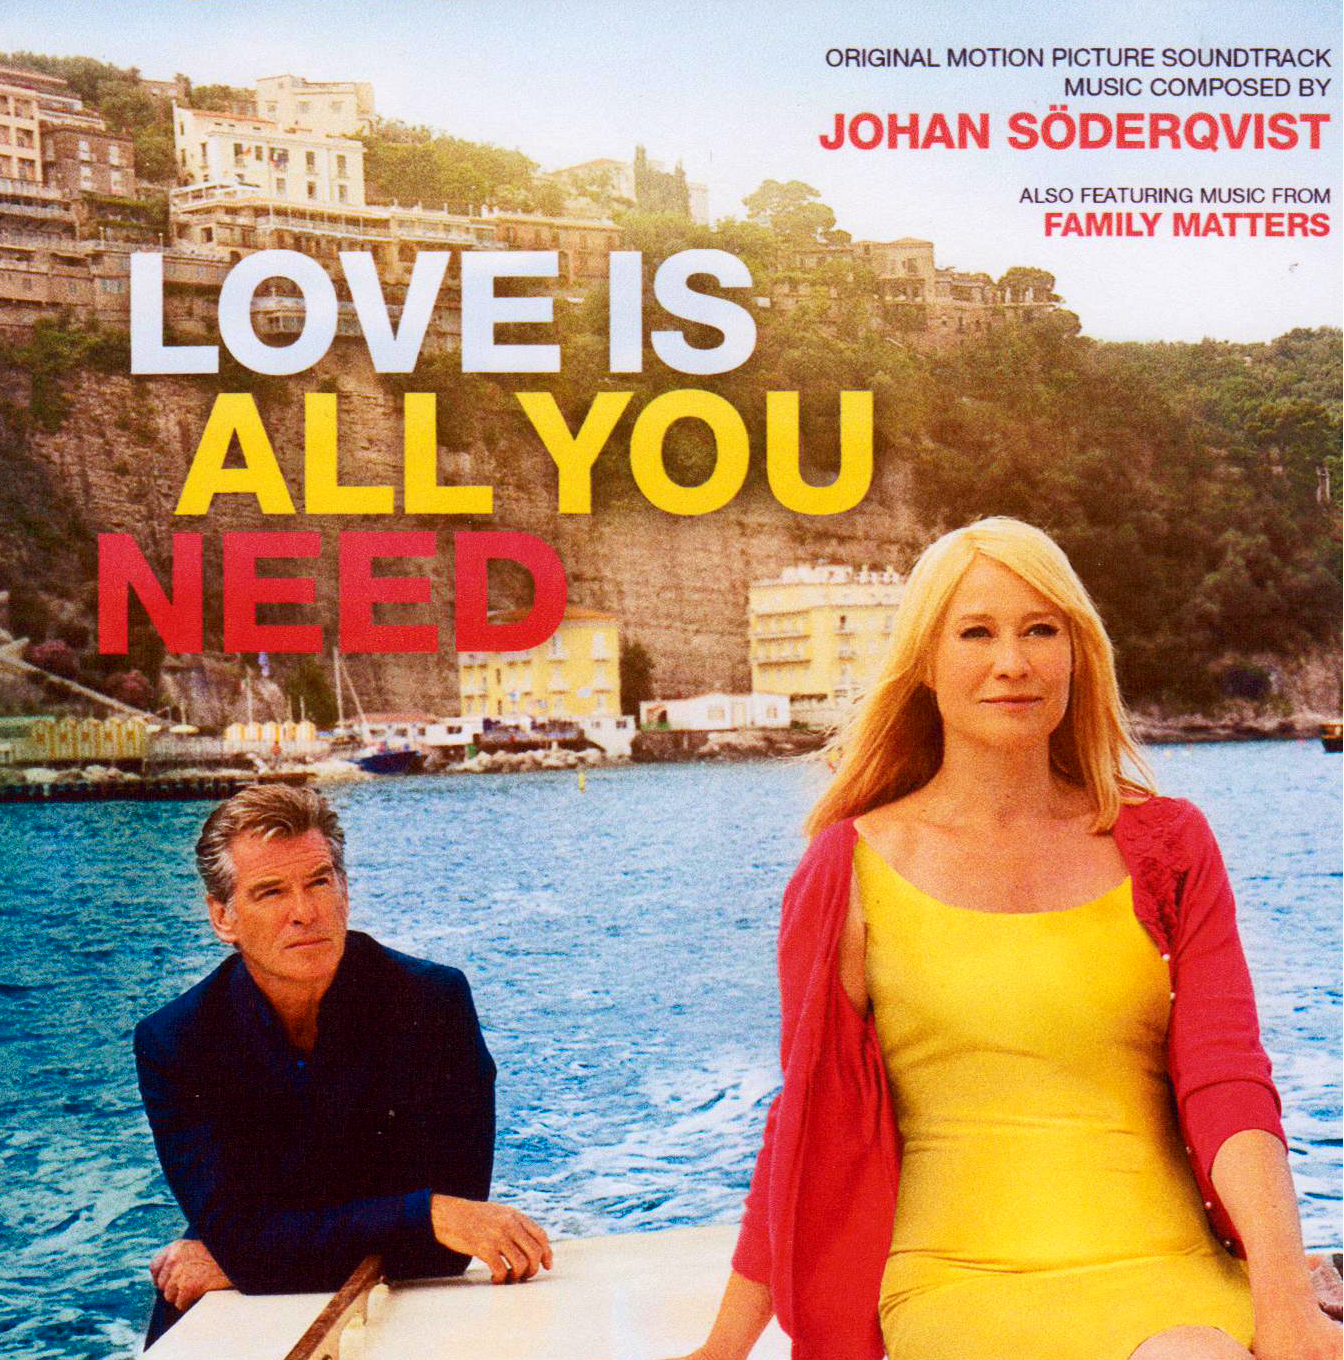 All You Need Is Love Film